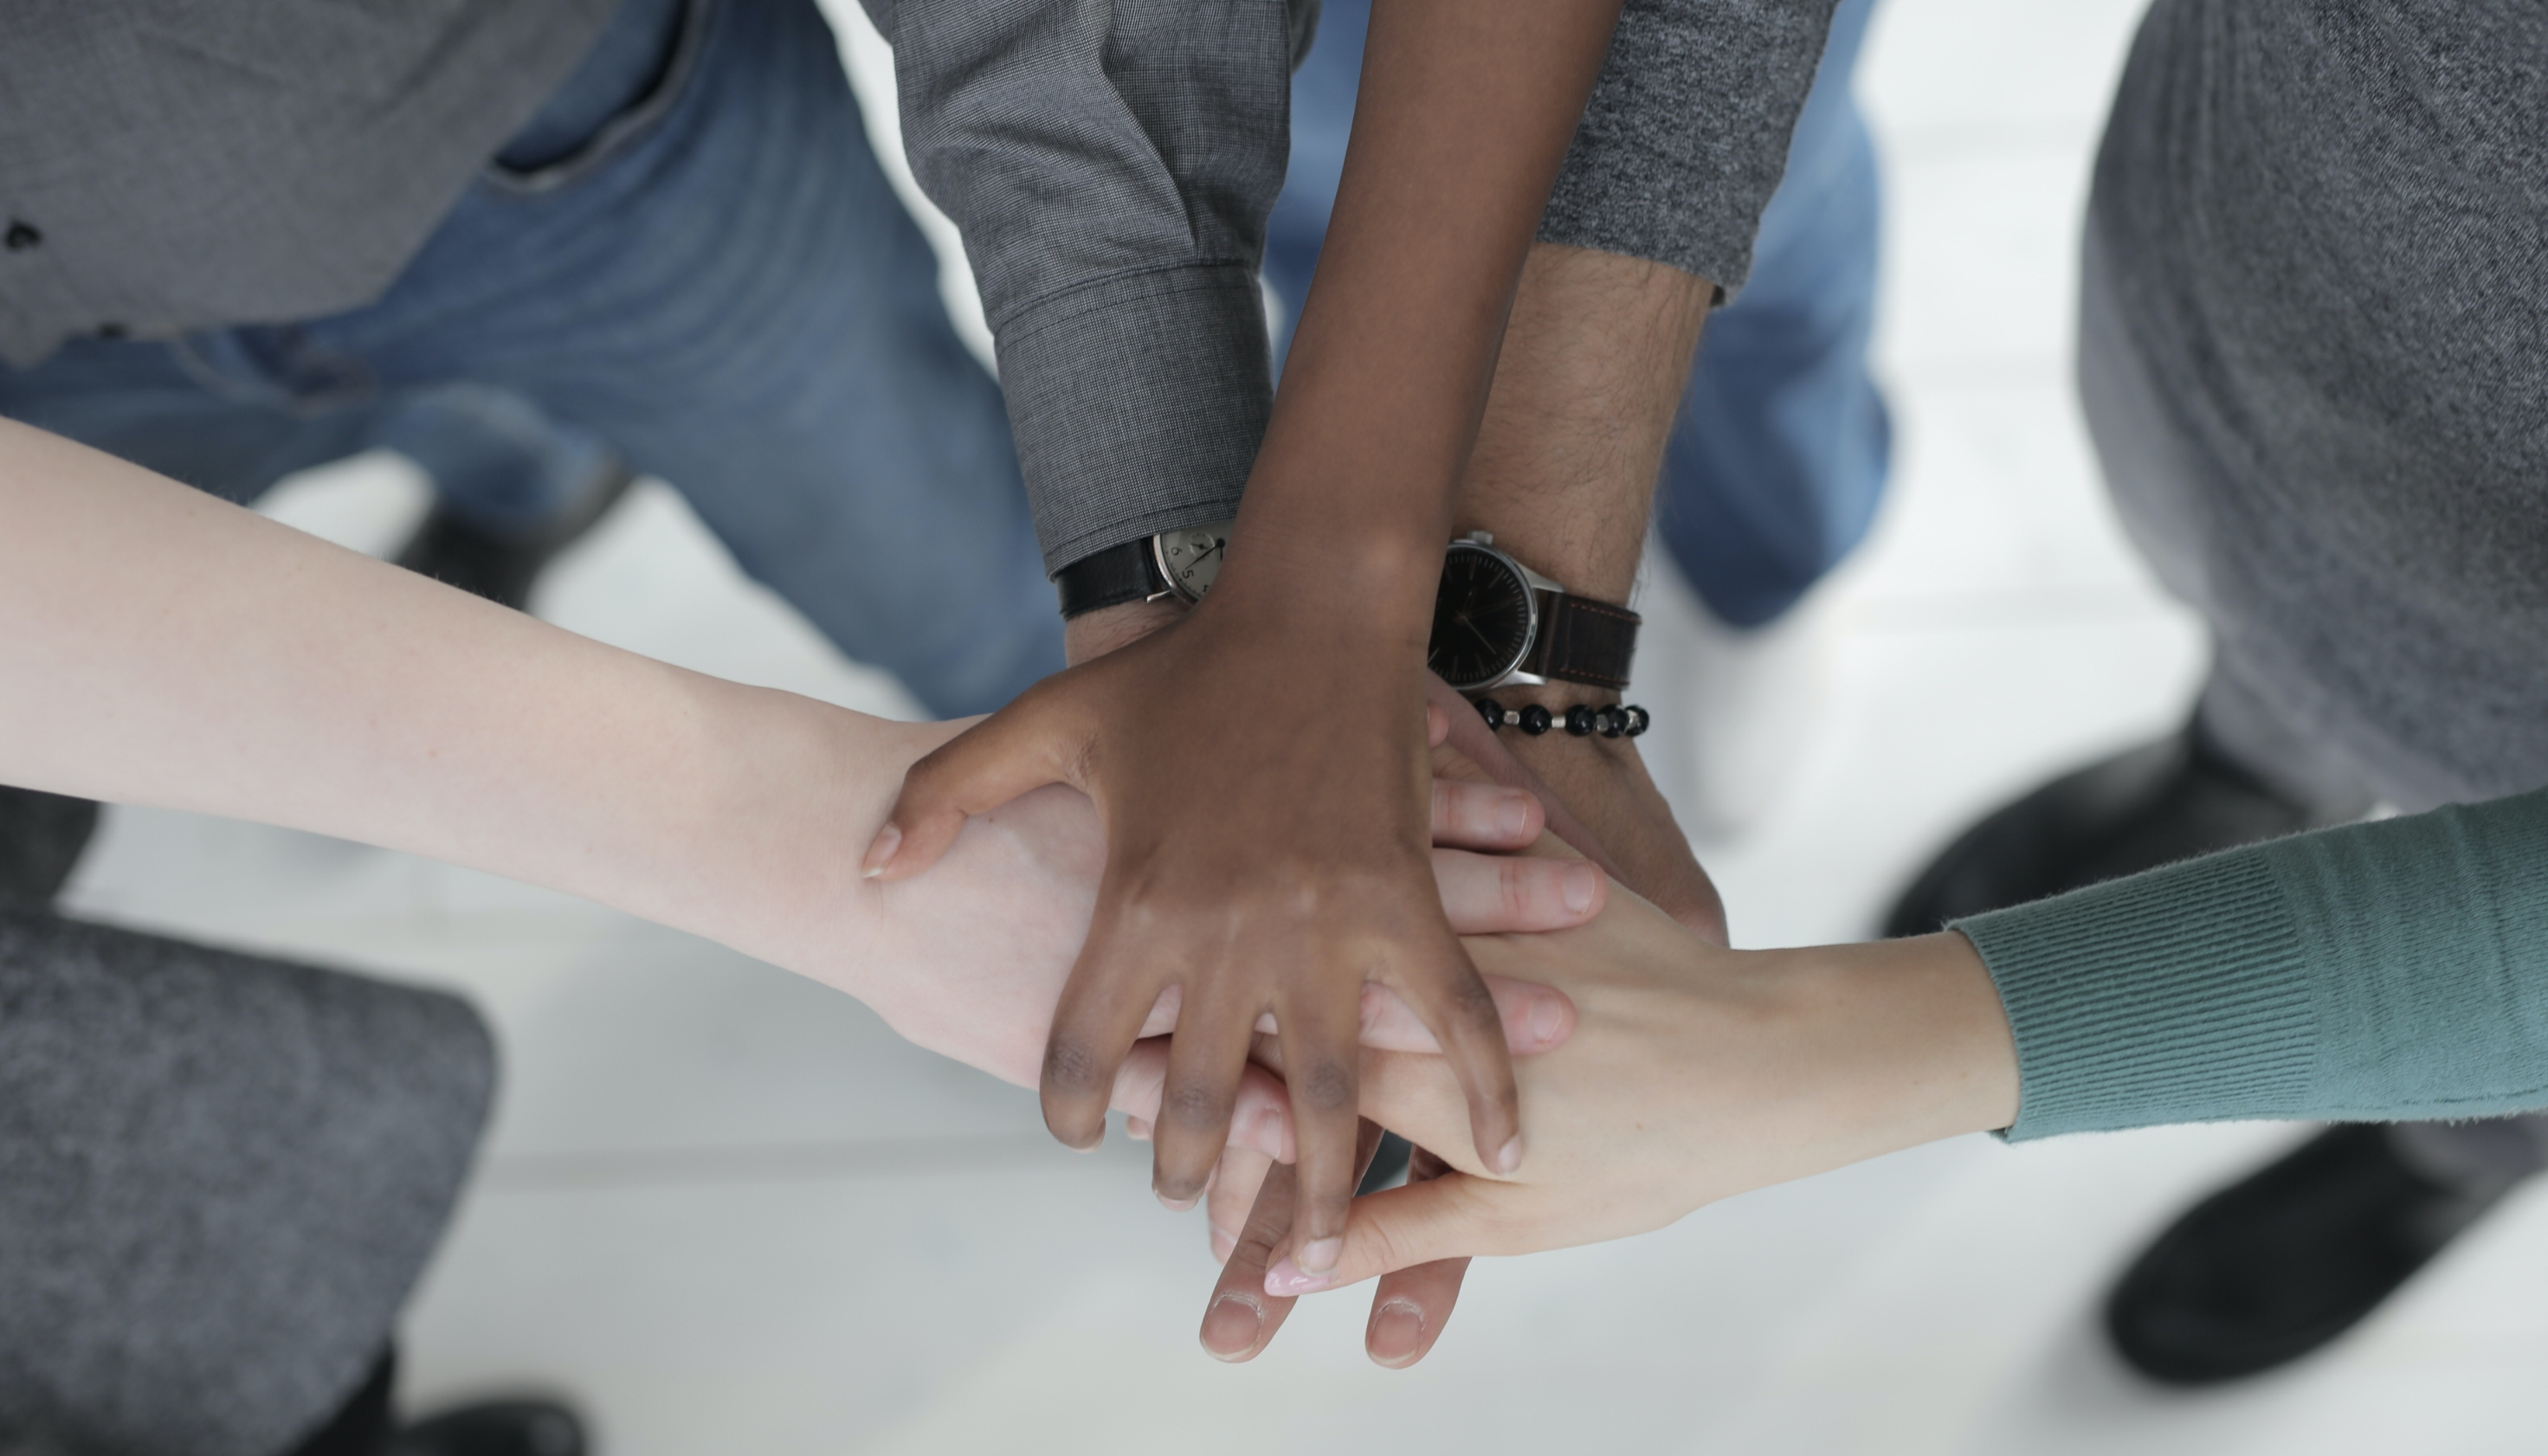 Multiethnic colleagues joining hands | Photo by Andrea Piacquadio from Pexels